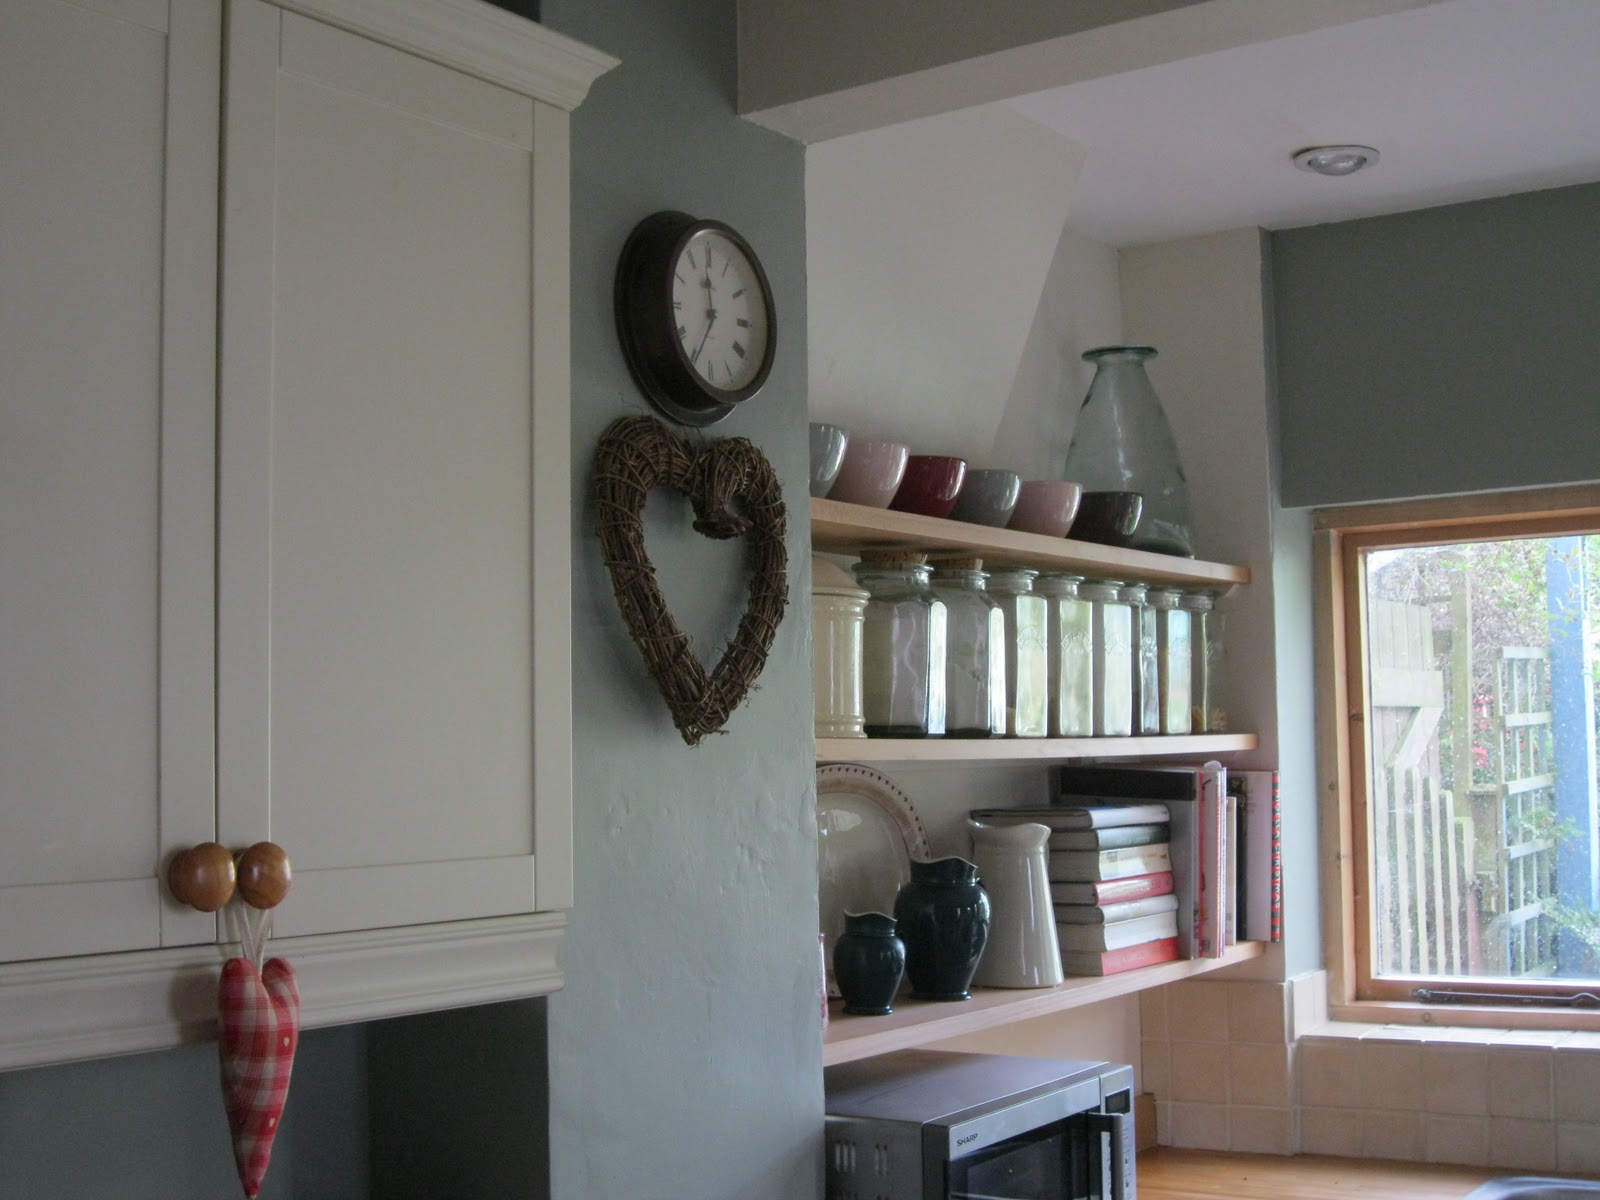 The Polished Pebble Modern Country Style Kitchen Storage: Modern Country Style: Modern Country Kitchen Colour Scheme